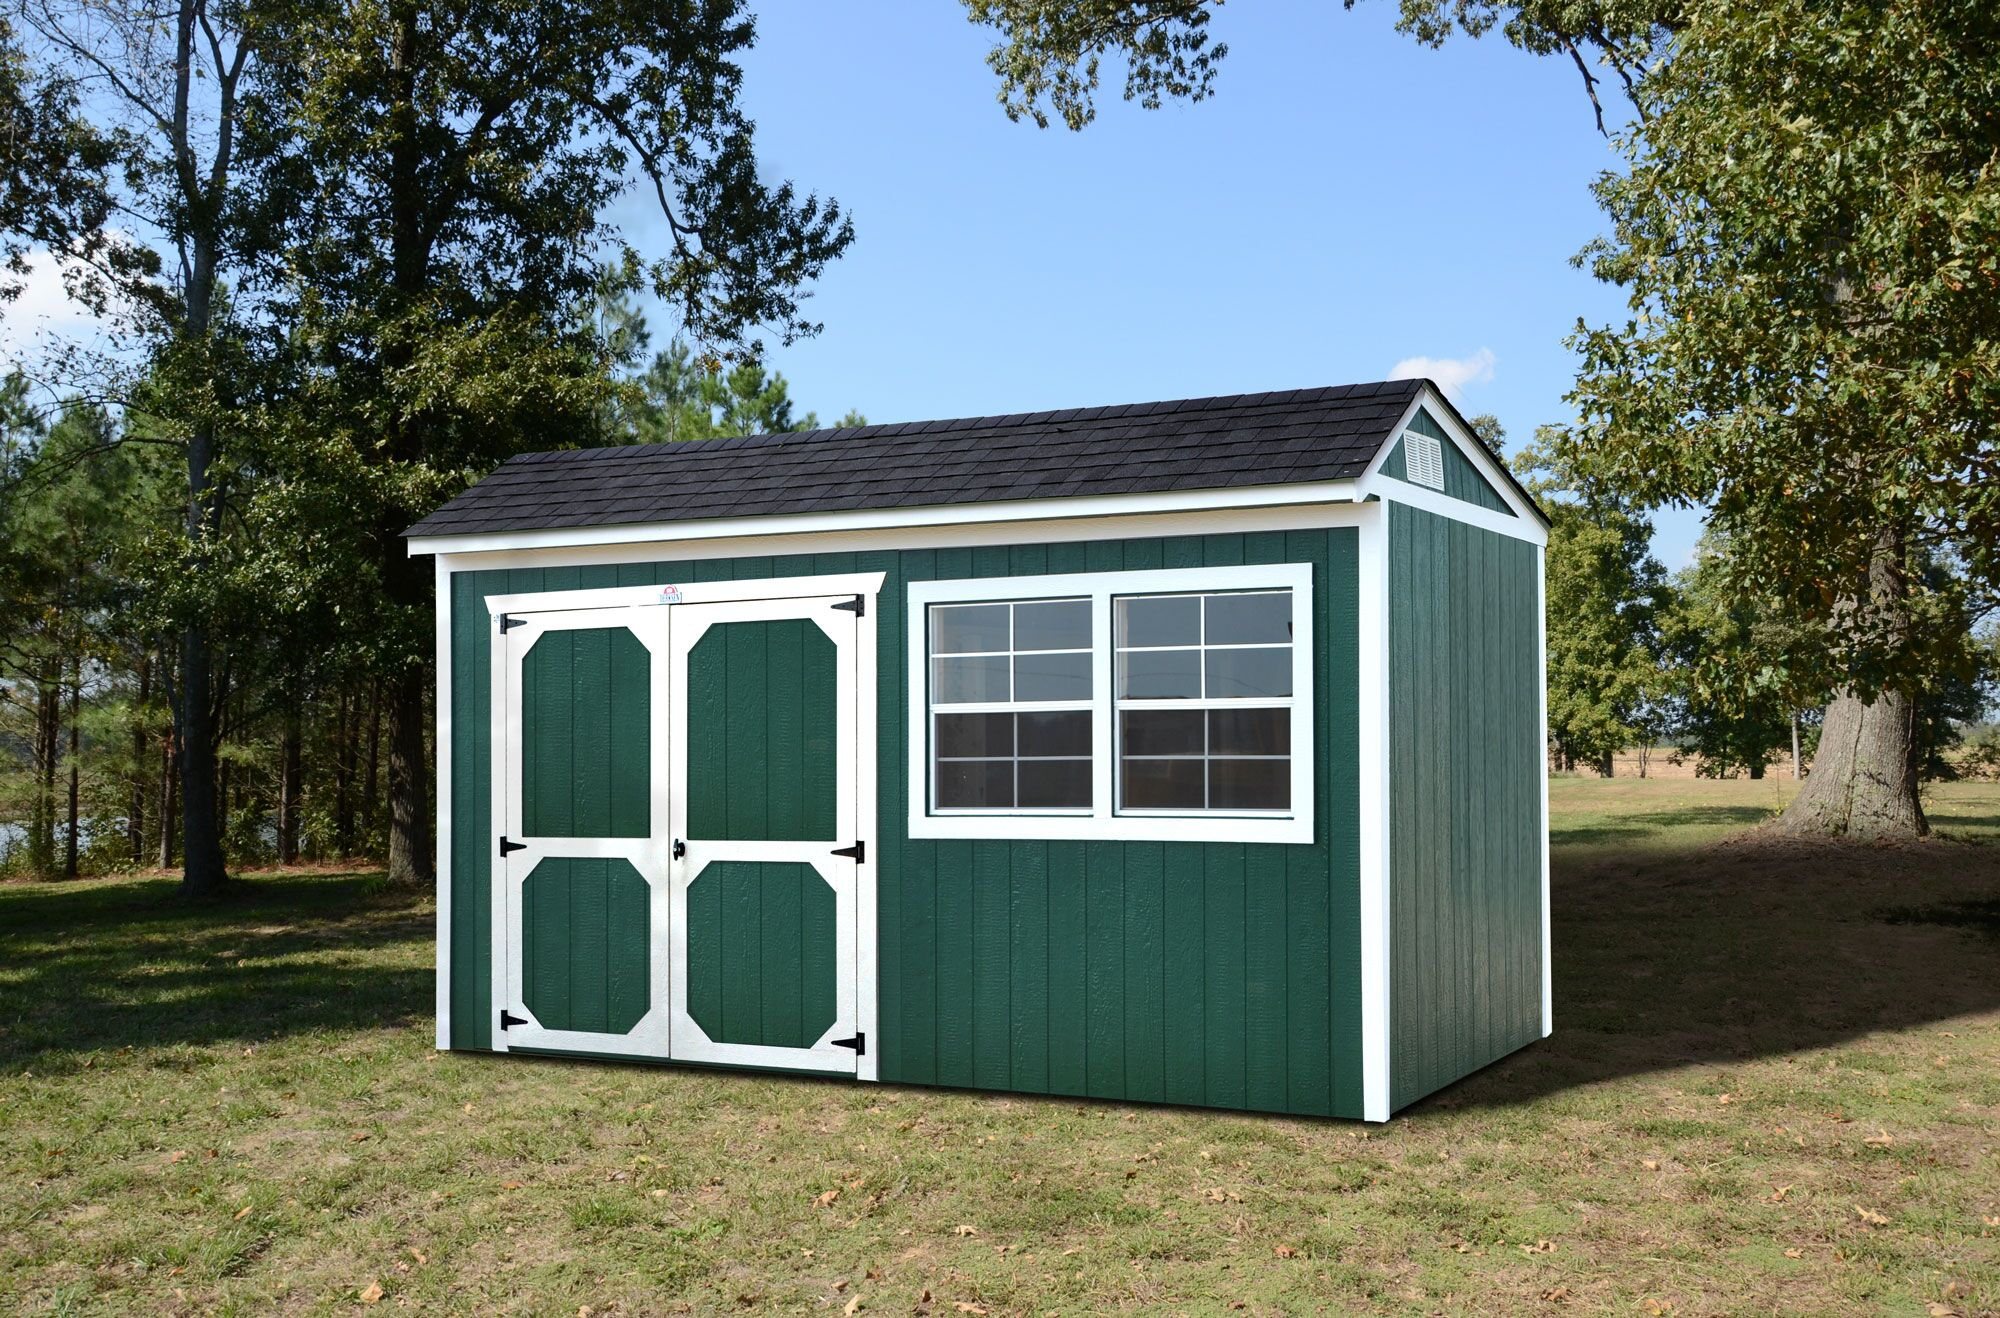 derksen_painted_cottage_shed_preview-1